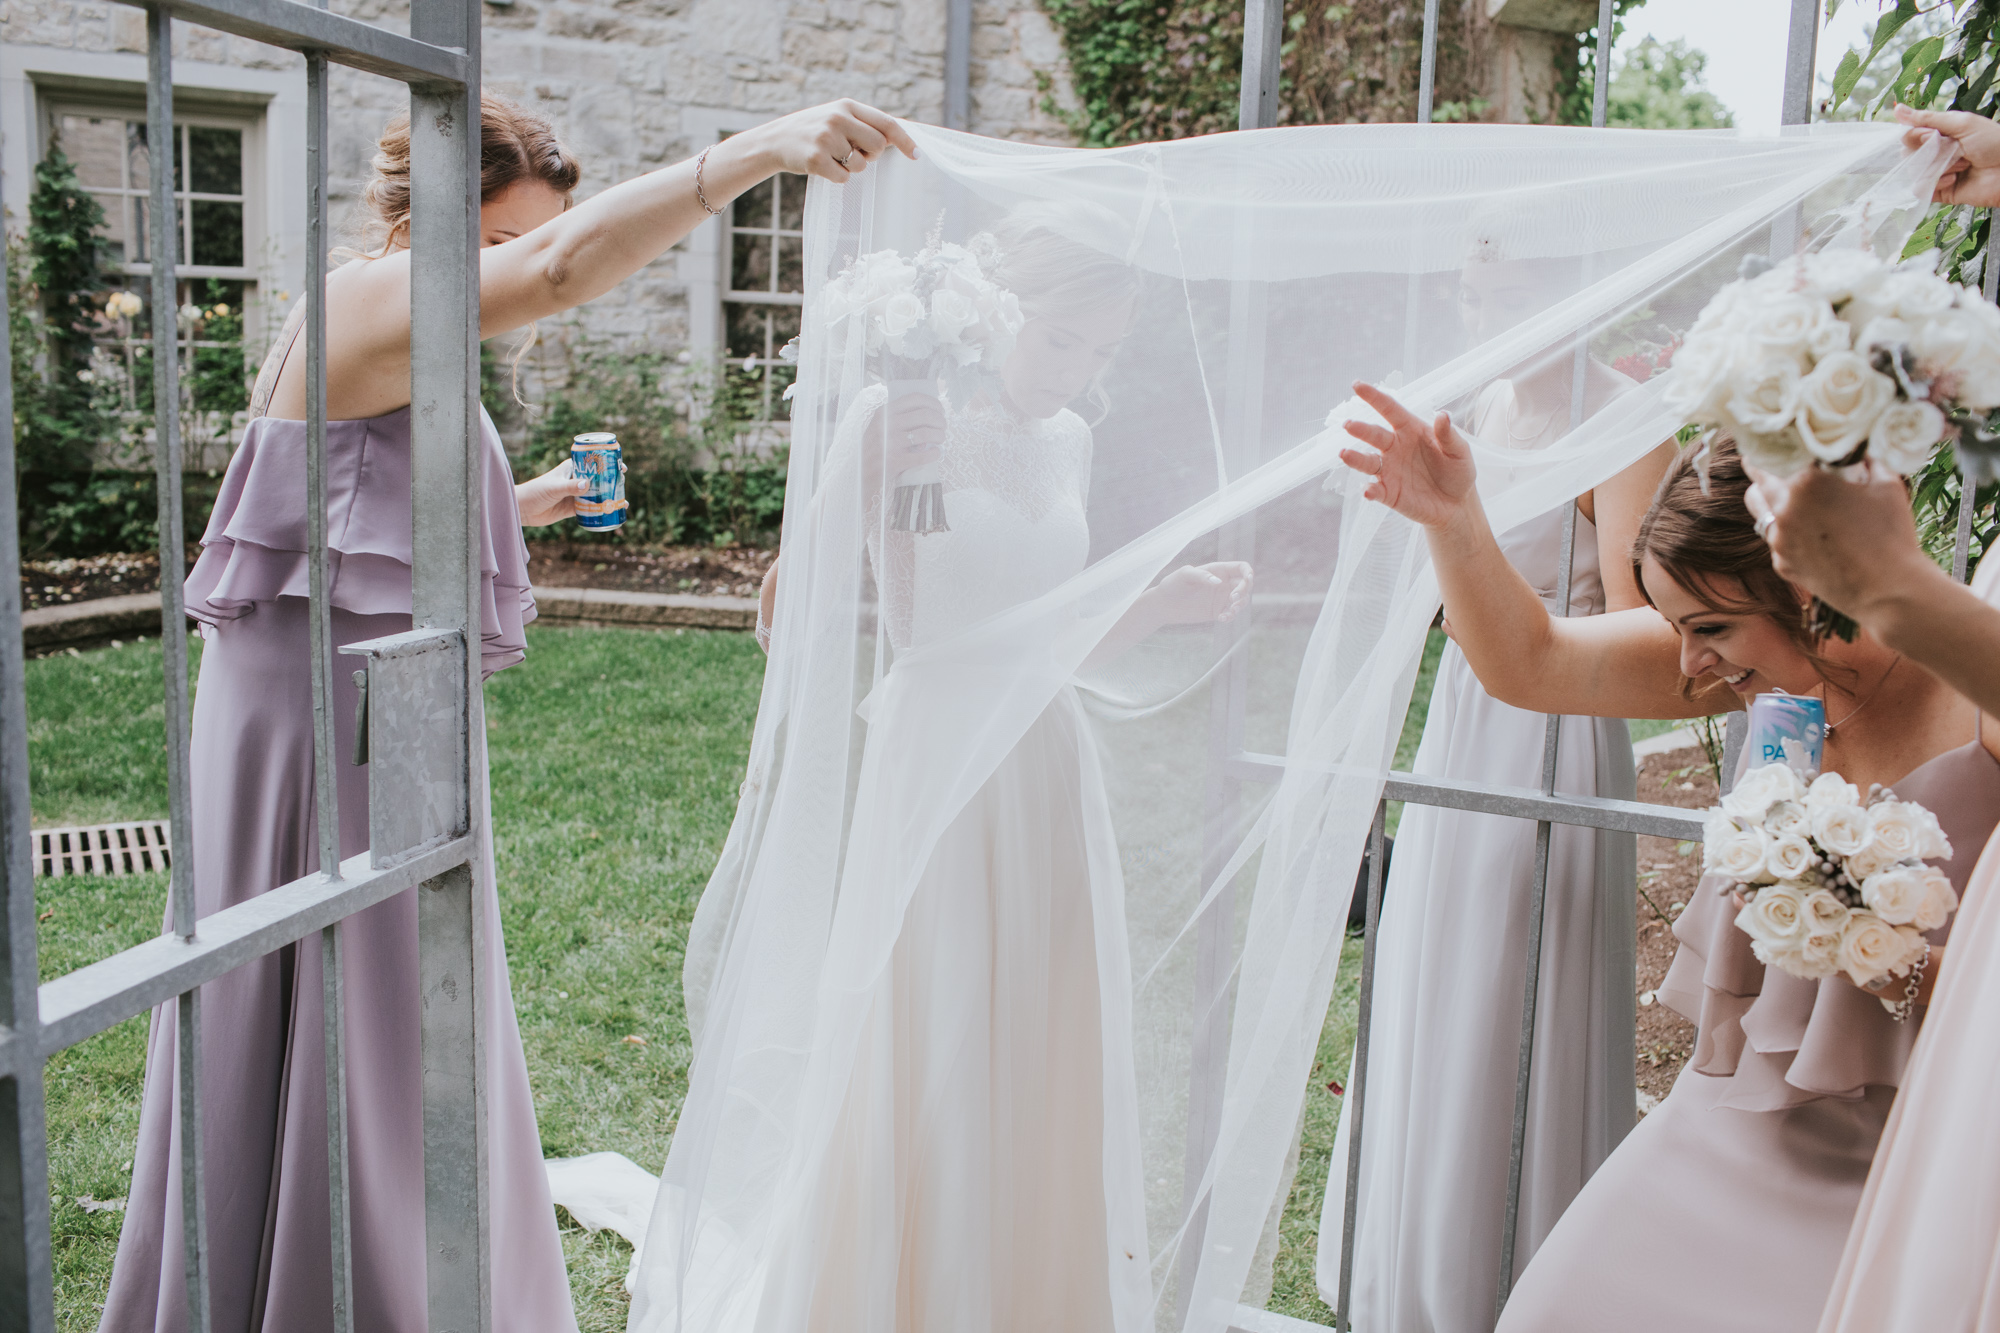 Note to Brides - Tulle equals mosquito net. Every time.